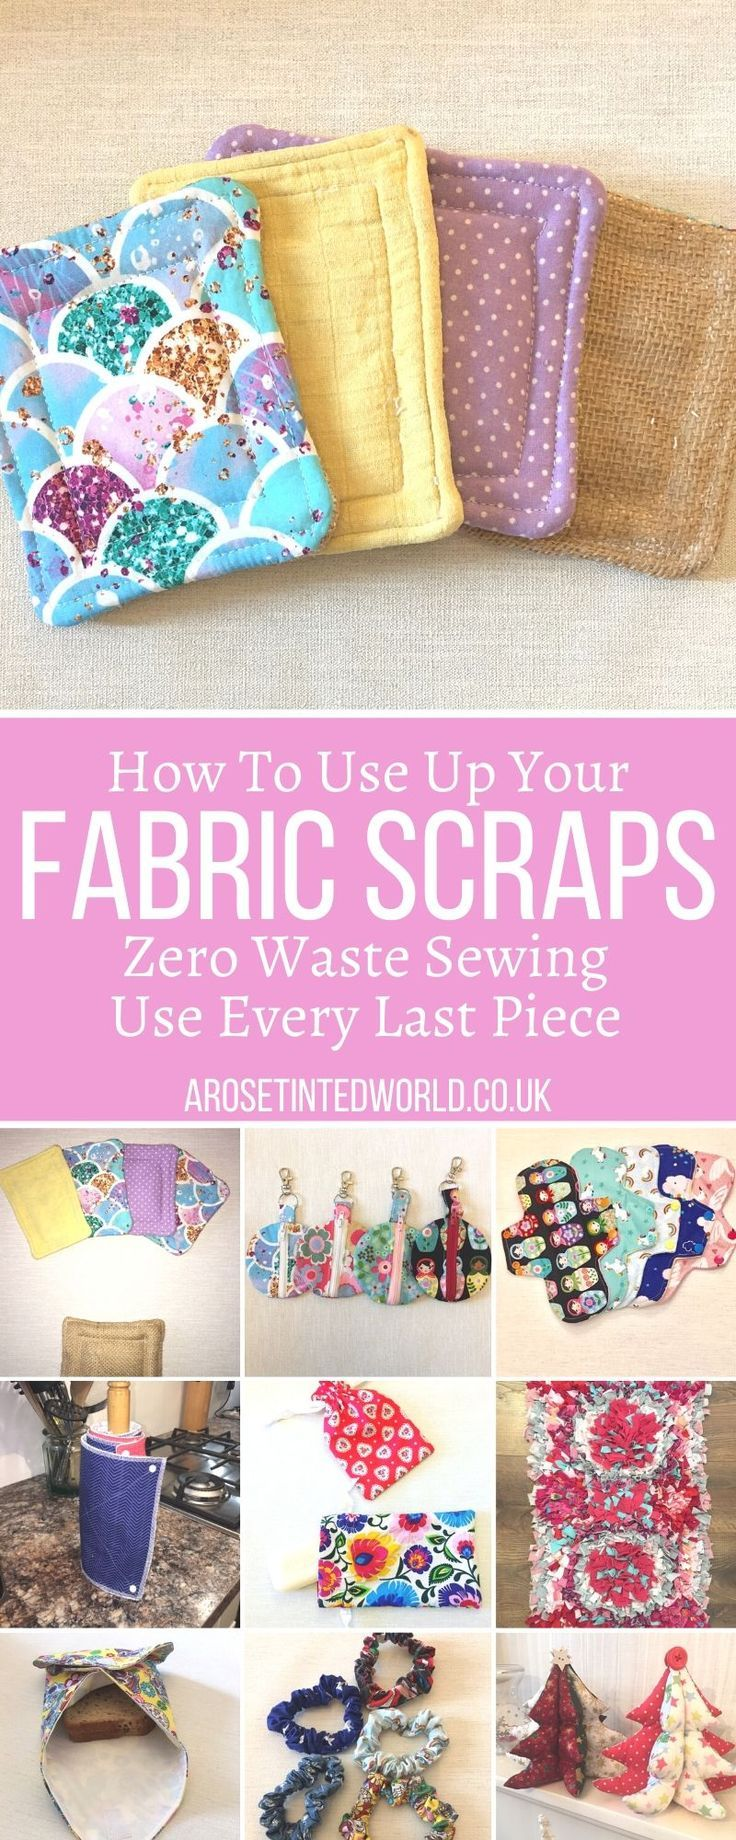 Fabric Scraps - How To Use Every Last Piece. ⋆ A Rose Tinted World